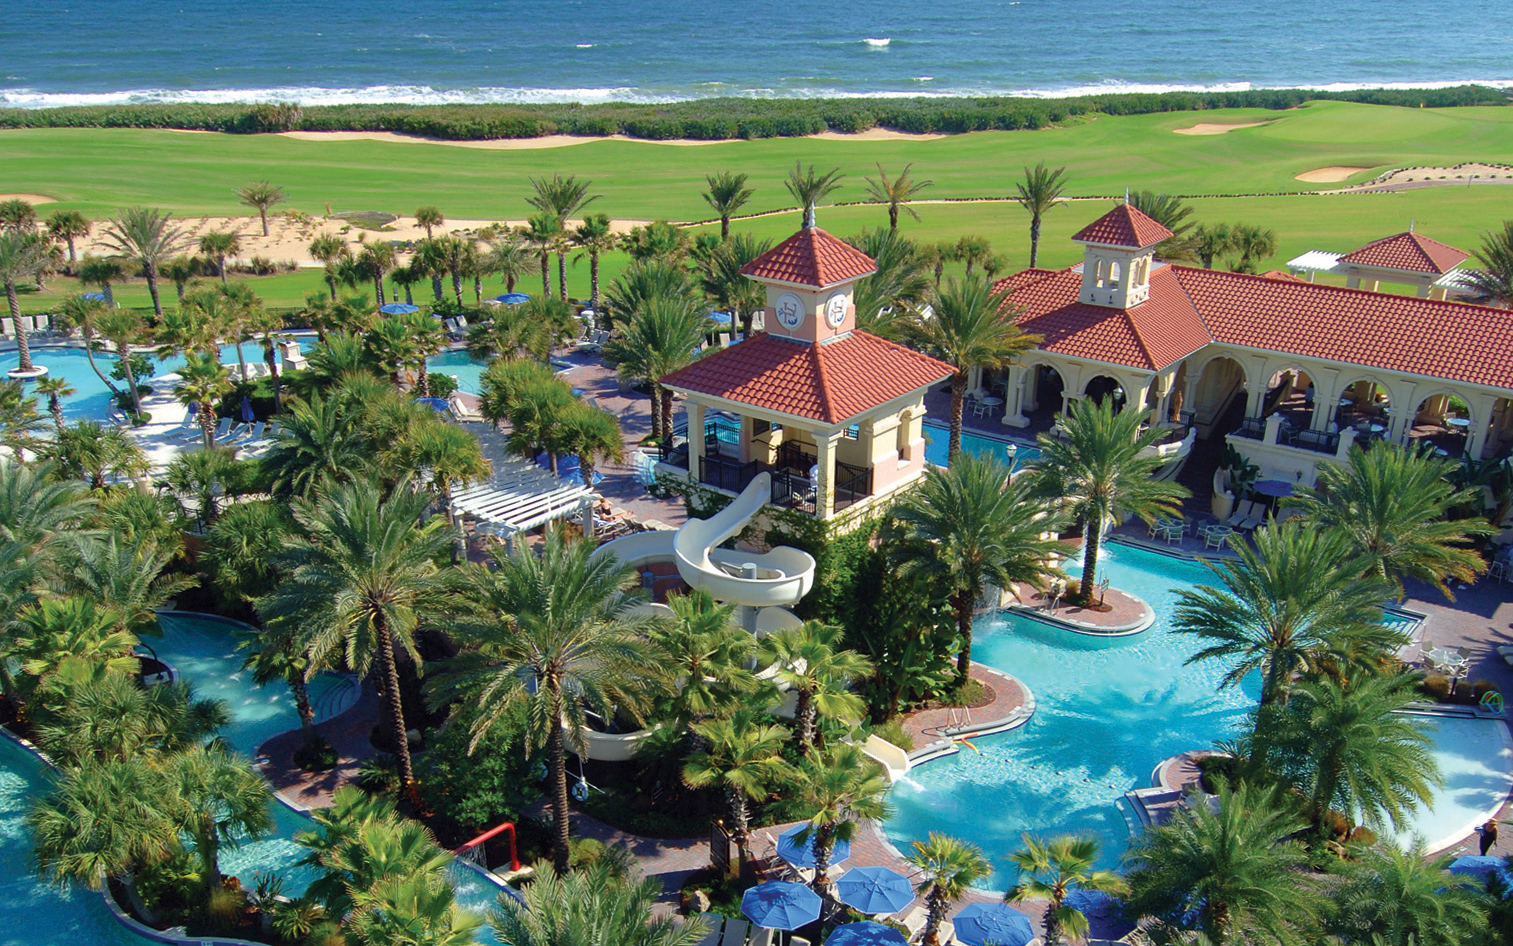 Best Family Beach Hotels: No. 5 (tie) Hammock Beach Resort, Palm Coast, FL